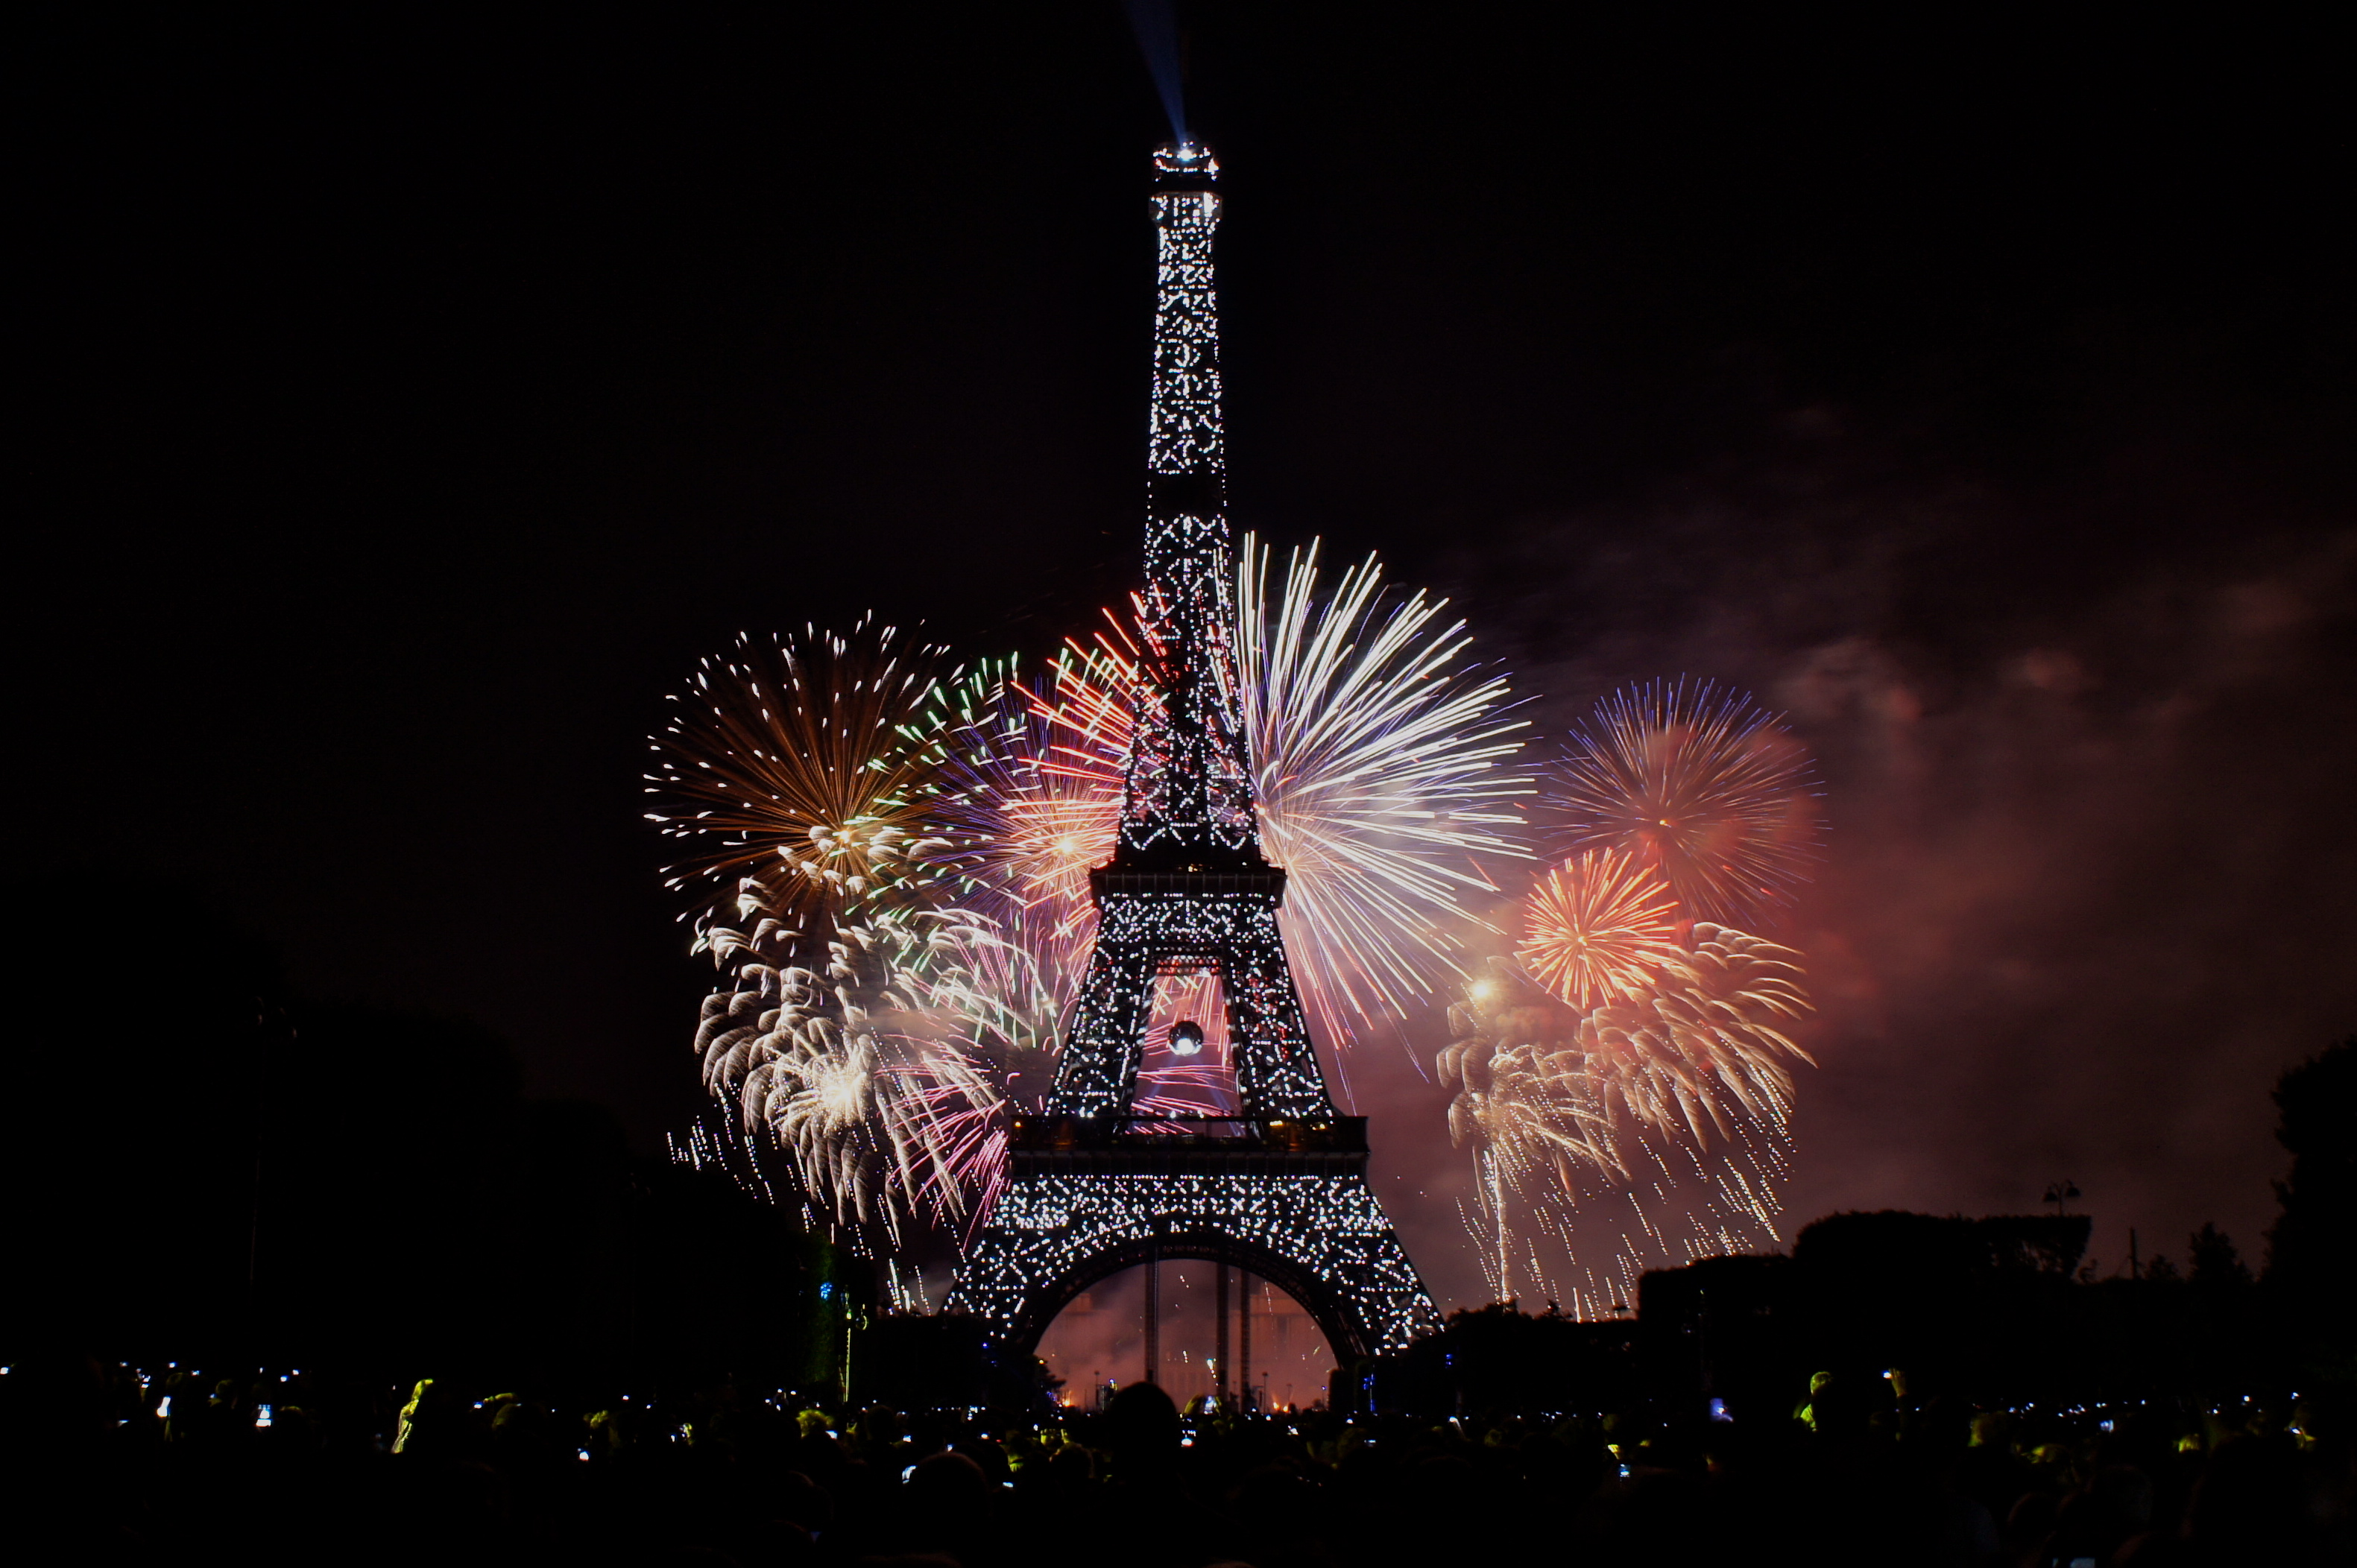 Eiffel Tower  Landscape     France  France     Paris  Fireworks  NightEiffel Tower At Night With Fireworks 2012